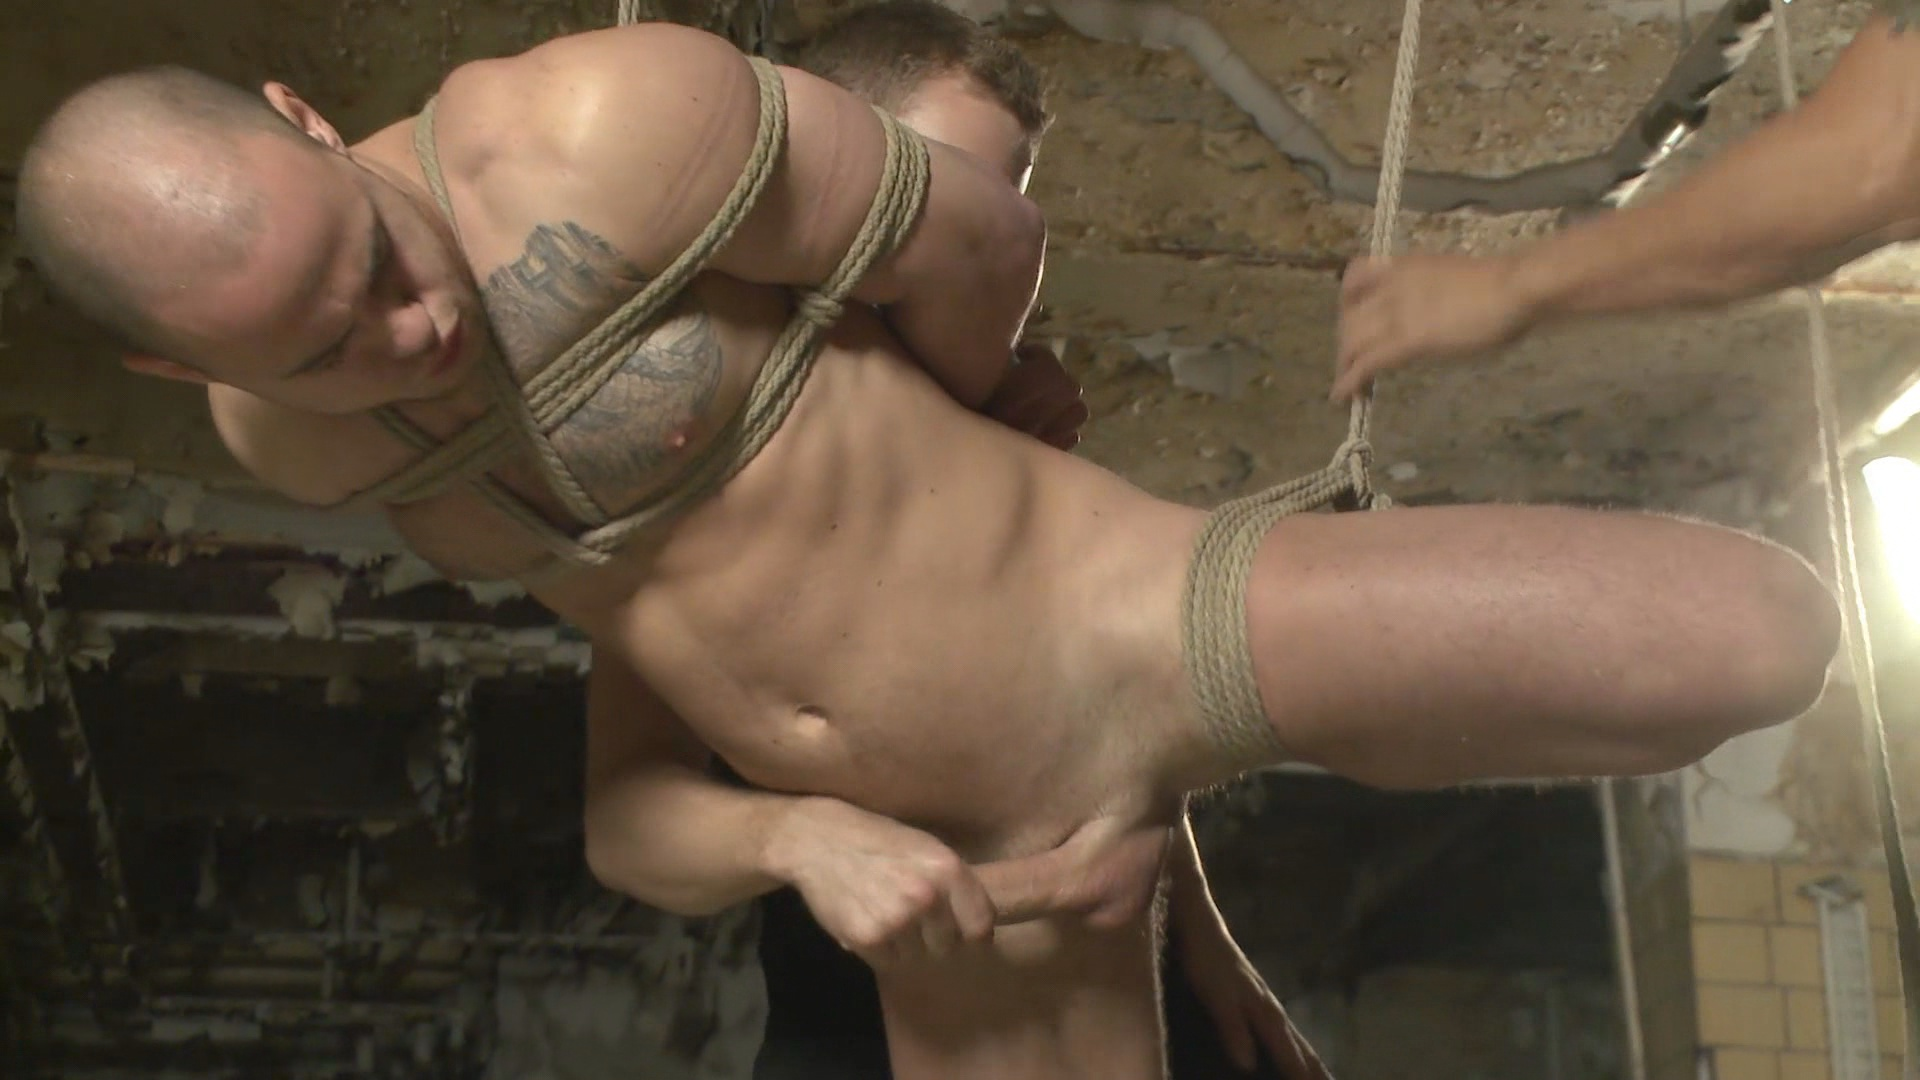 Men On Edge: Straight German Stud Gets Edged While His Girlfriend Watches Xvideo gay